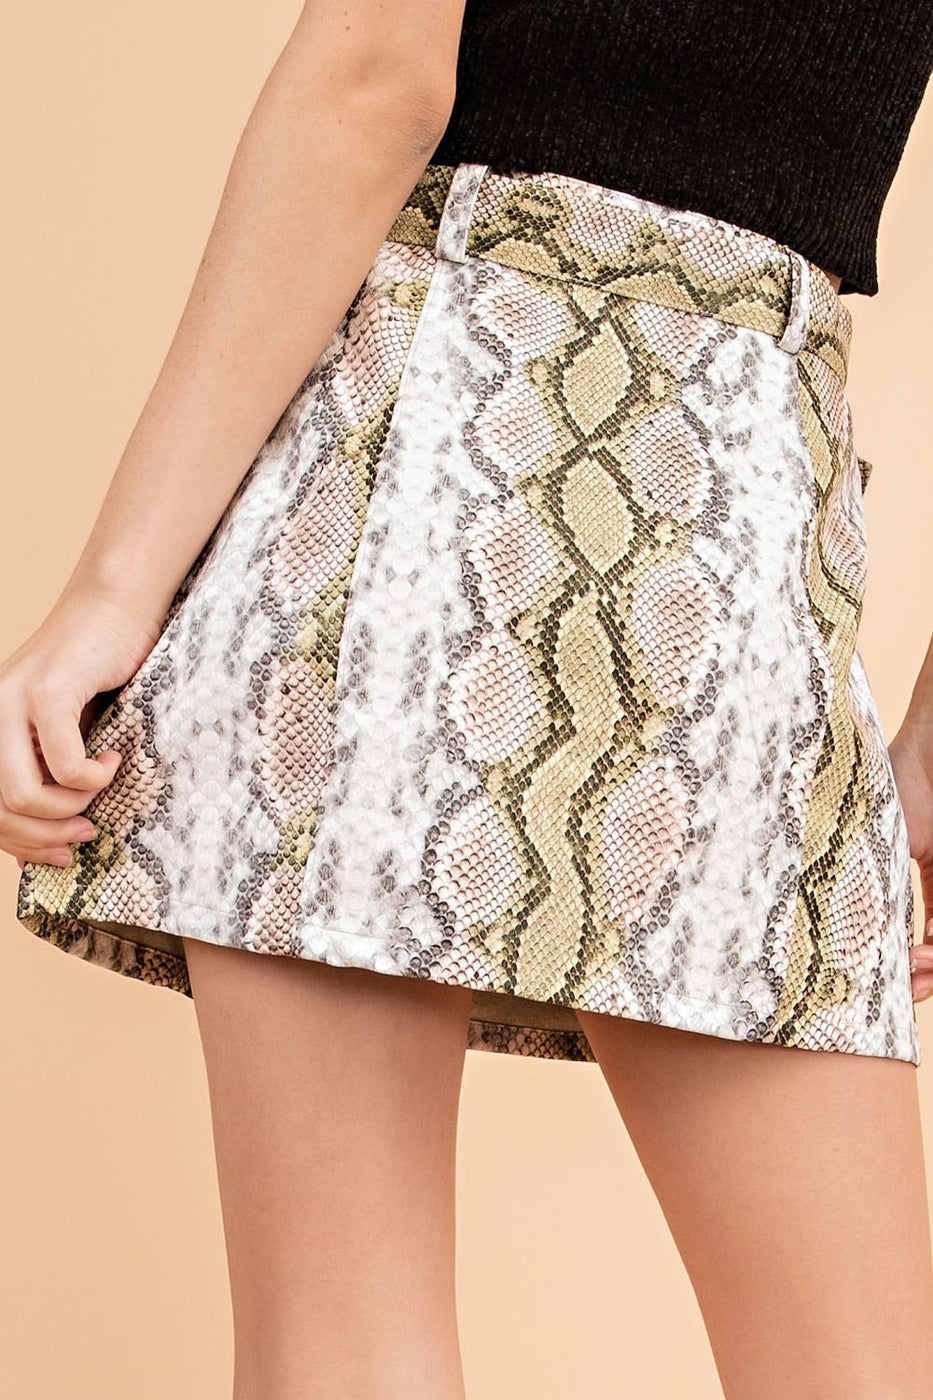 Mini Skirt With Snake Print Front Buckle In Brown-Multi Siin Bees